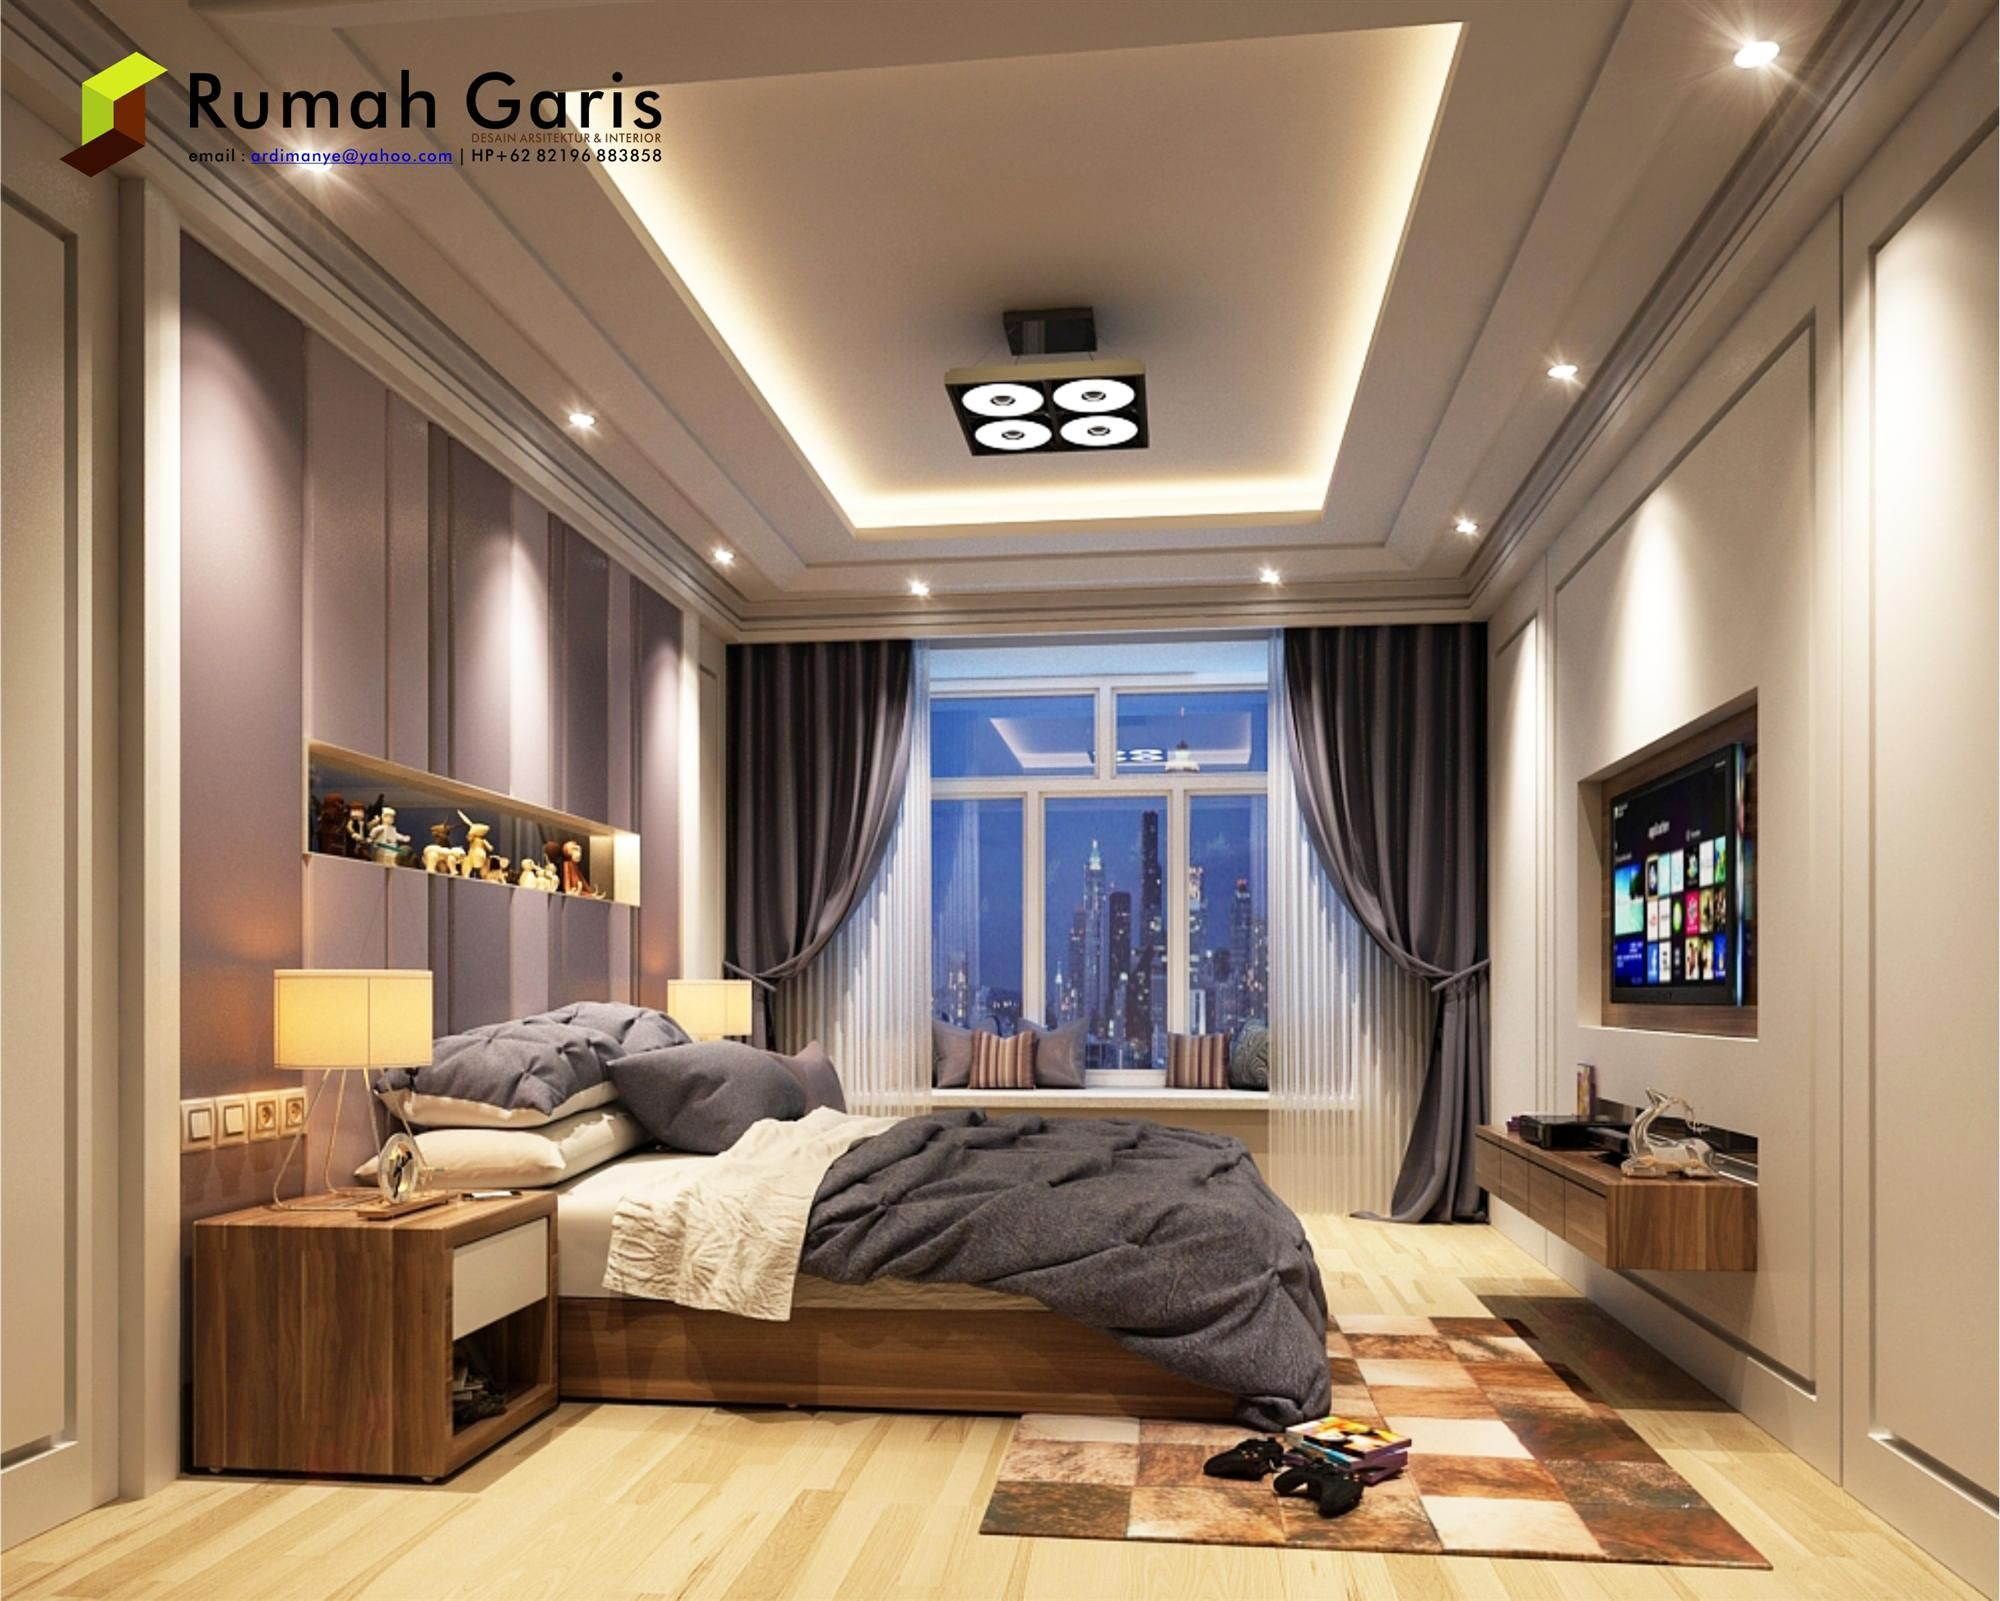 innovative ppb office design. 3d Bedroom Design. Jasa Render Vray Interior Kamar Anak Makassar Indonesia · Makassarbedroom Designsindonesia Innovative Ppb Office Design